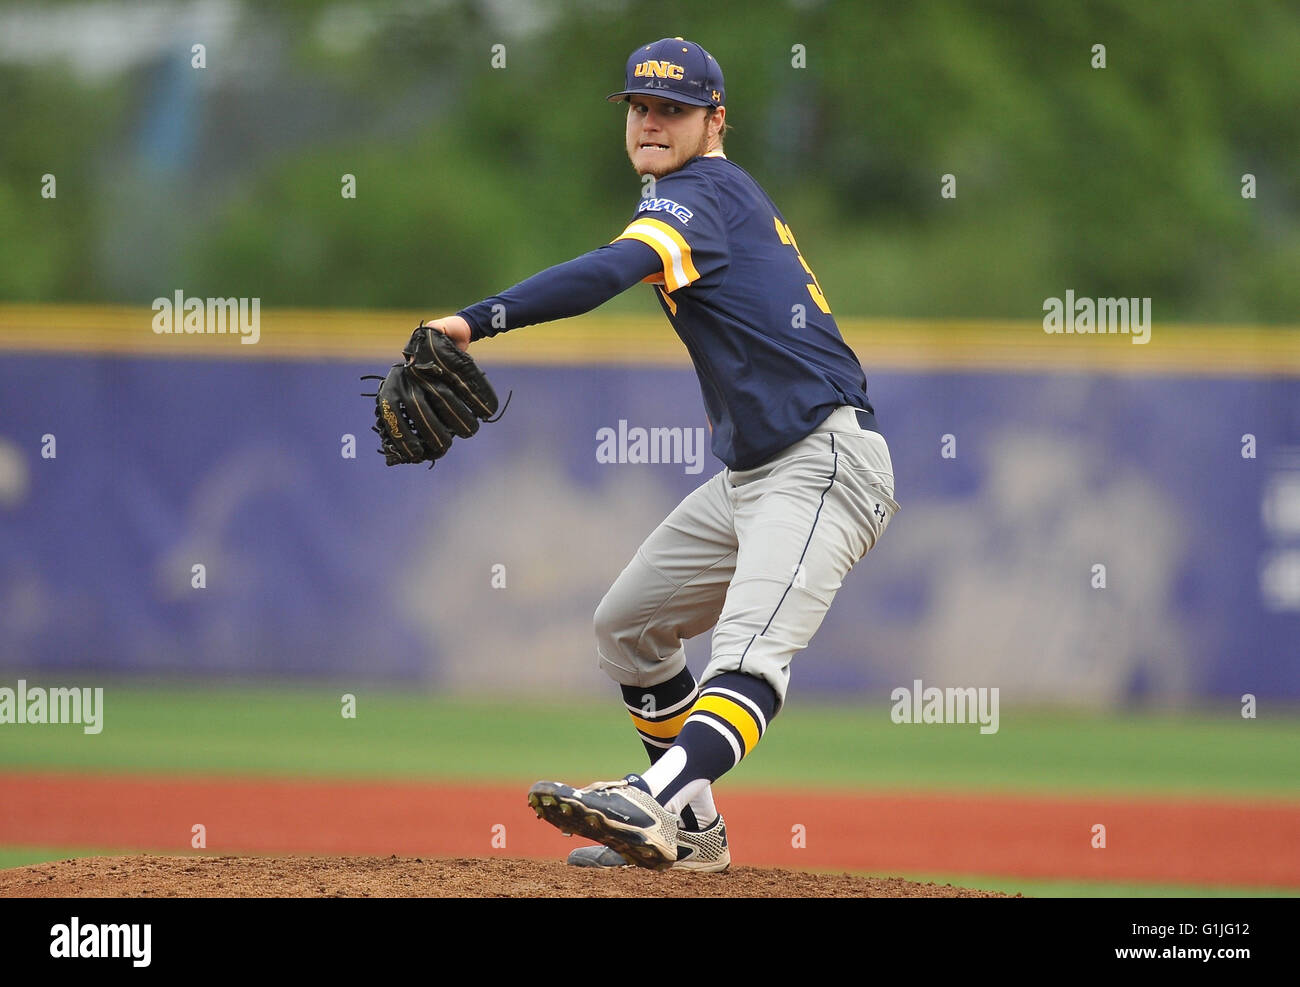 Northern Colorado pitcher Cody Carroll (30) throws a strike in a non-conference game against the University of Washington. - Stock Image